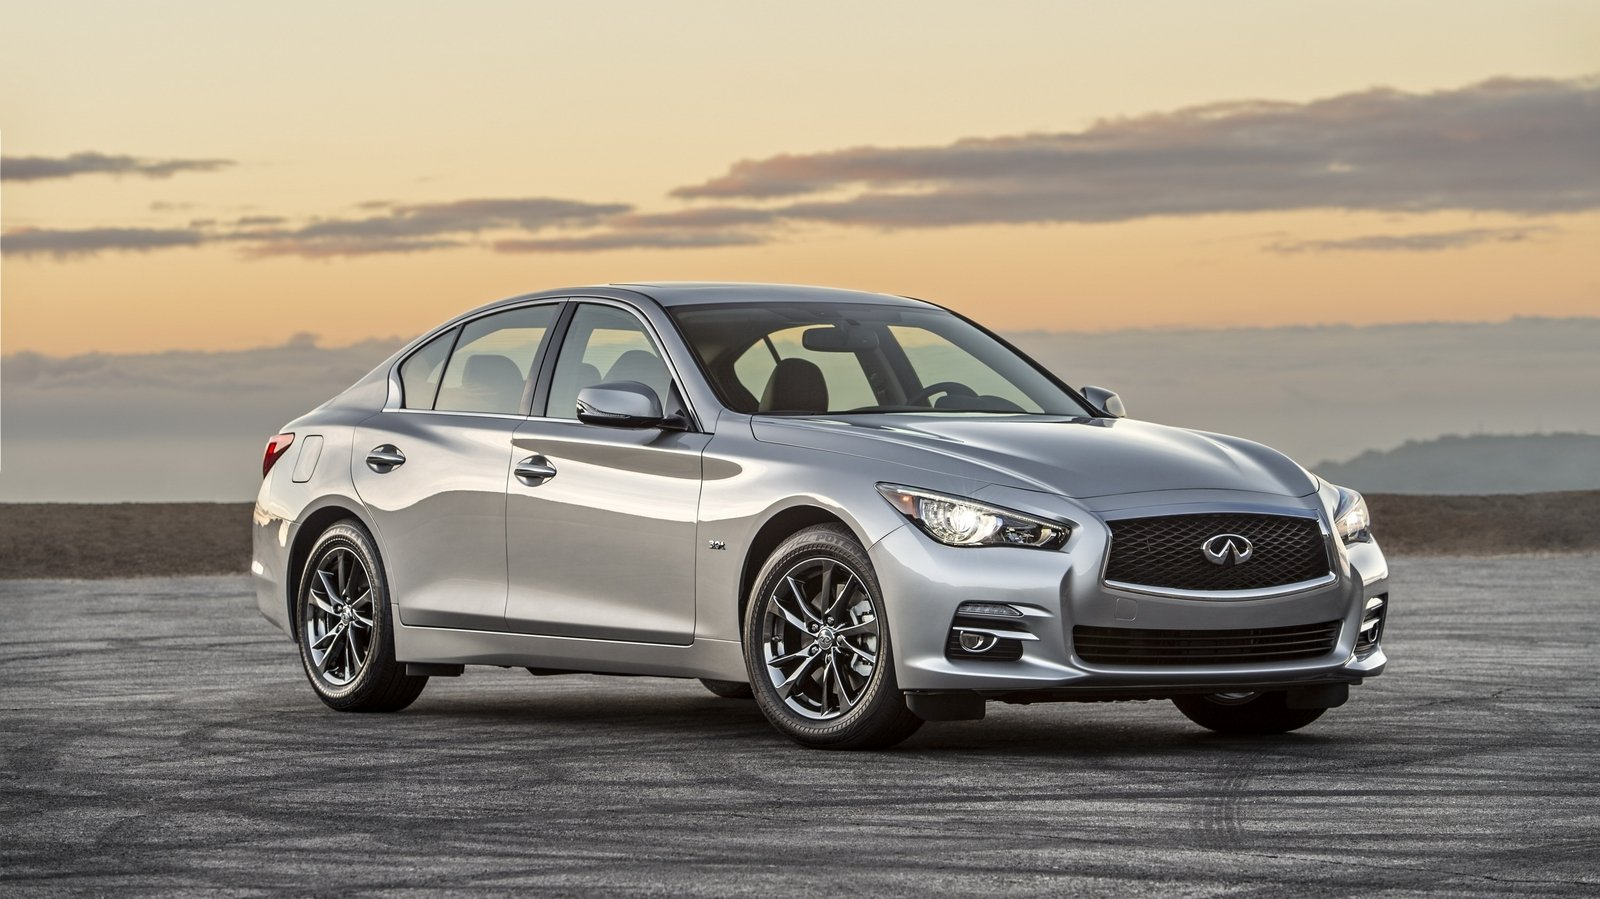 2017 infiniti q50 signature edition review top speed. Black Bedroom Furniture Sets. Home Design Ideas